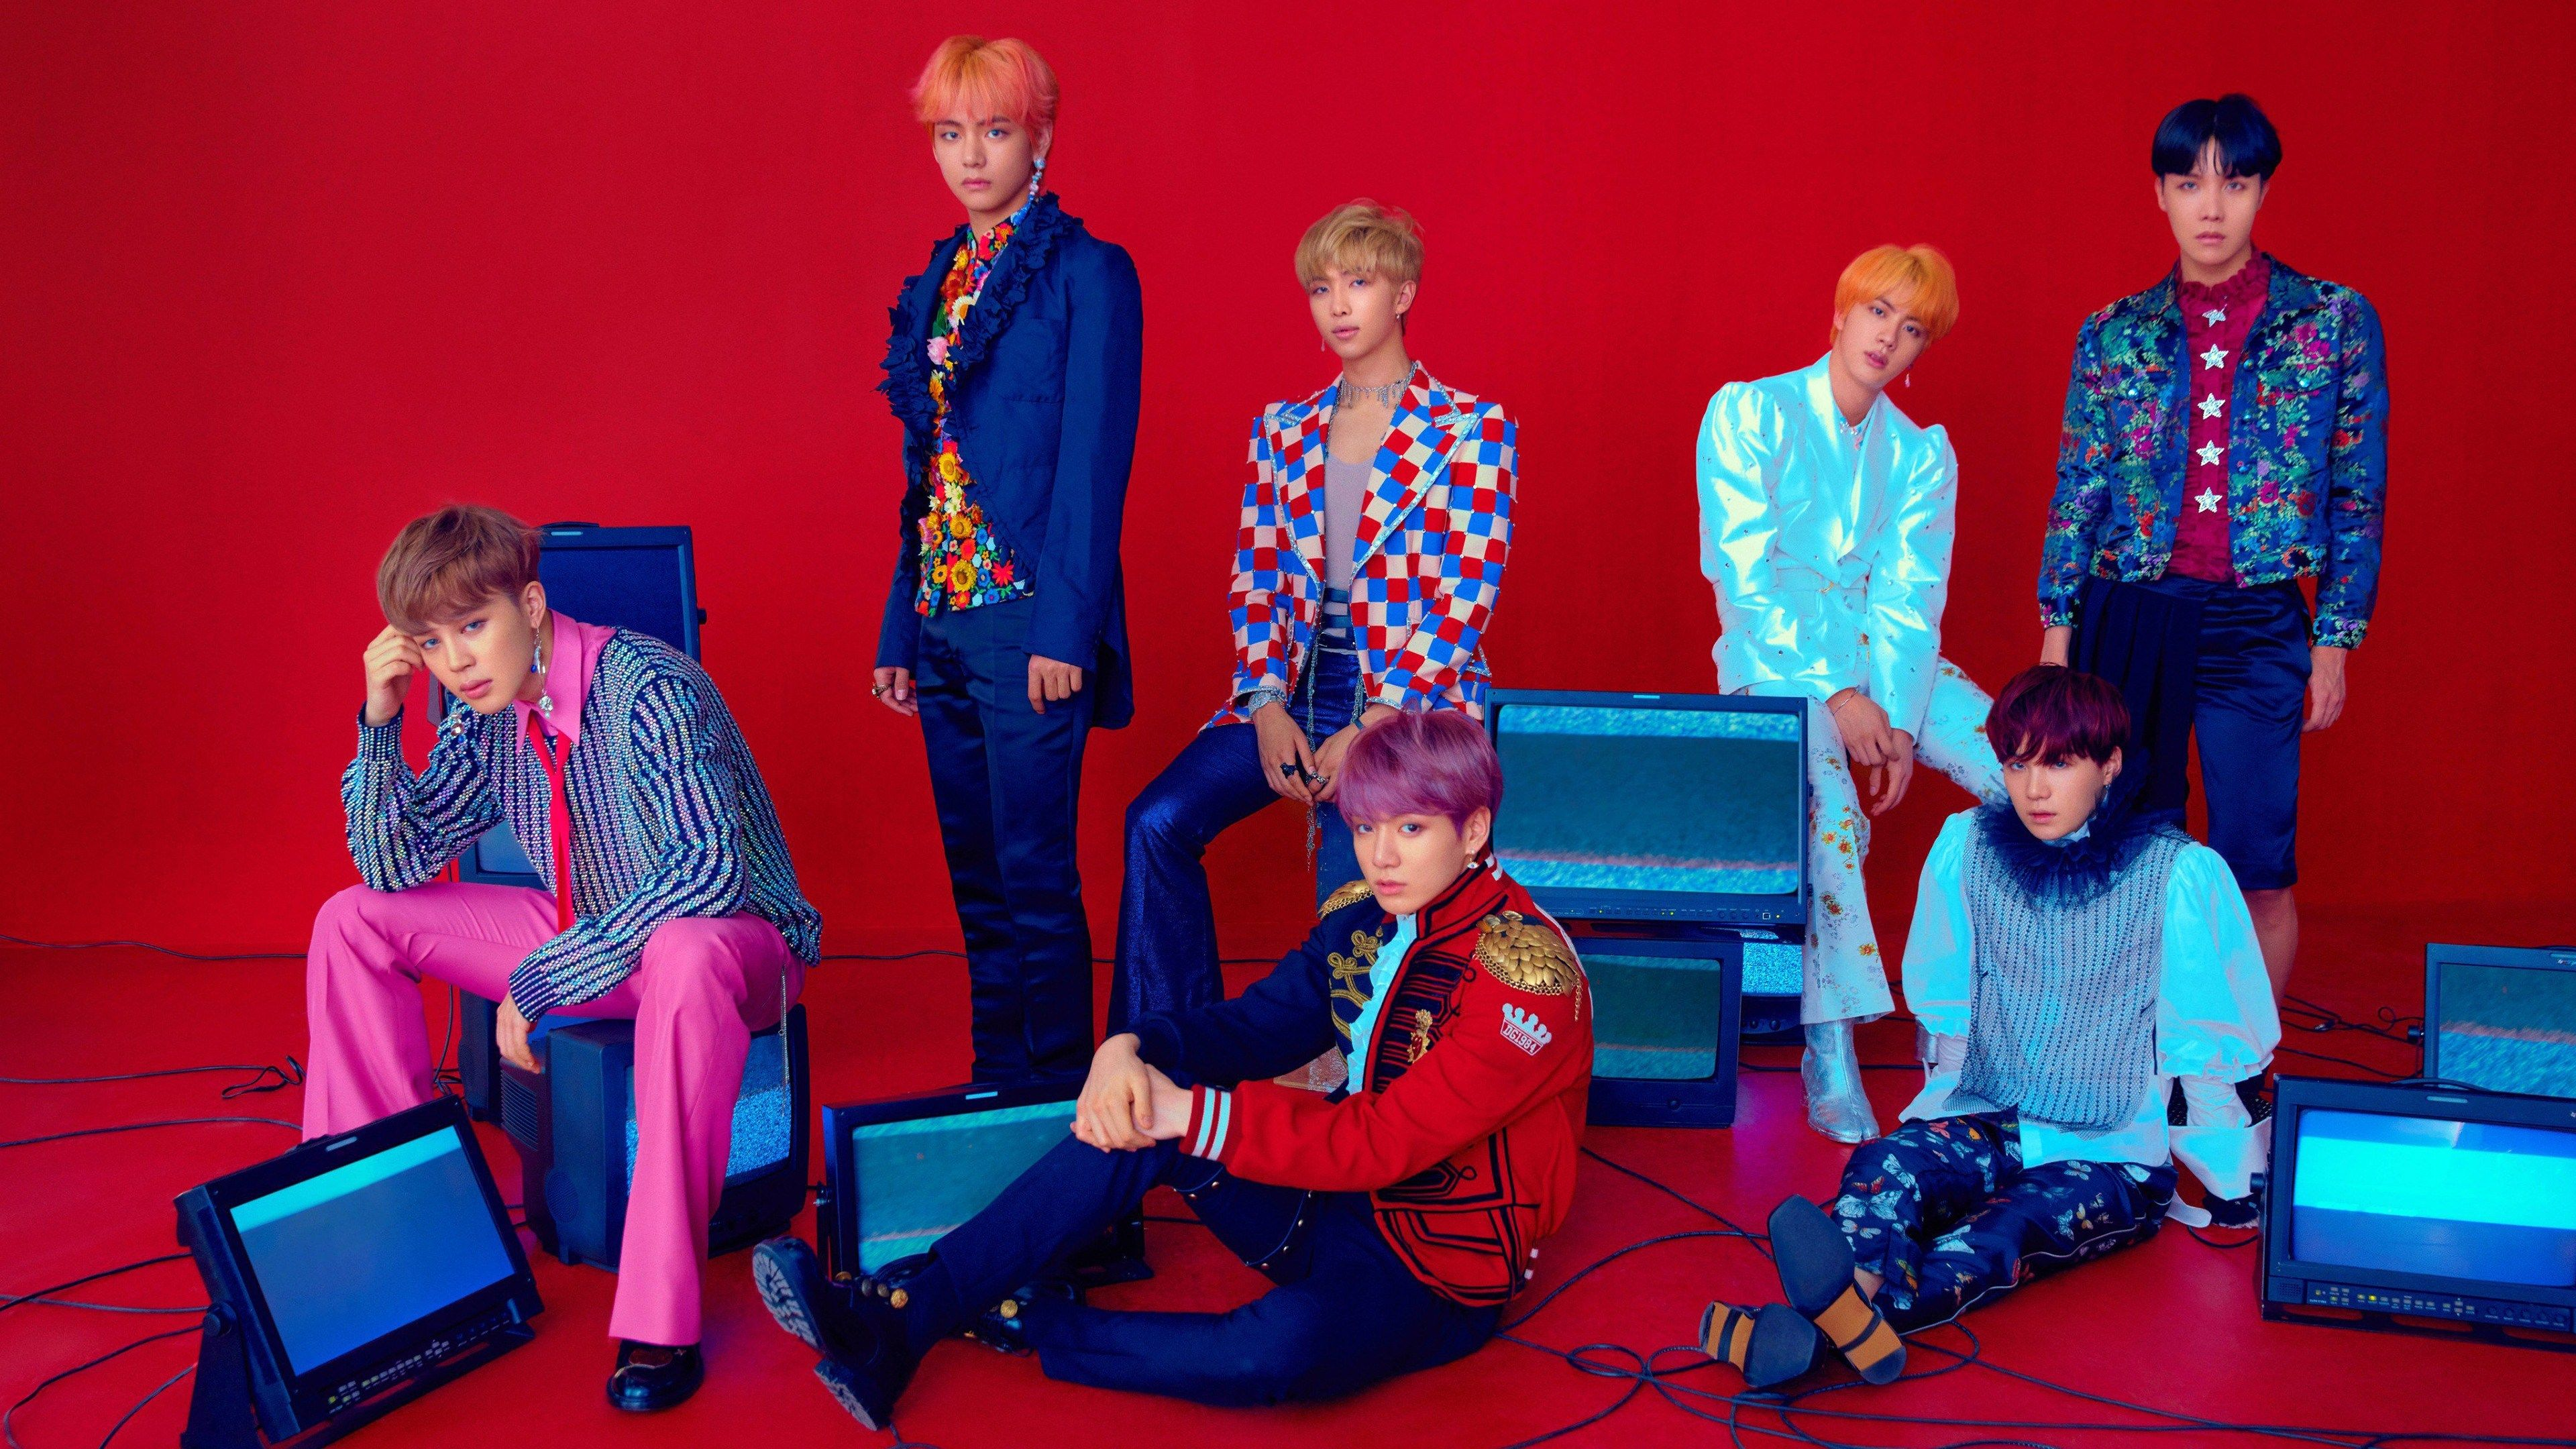 Map Of The Soul Persona Wallpapers Top Free Map Of The Soul